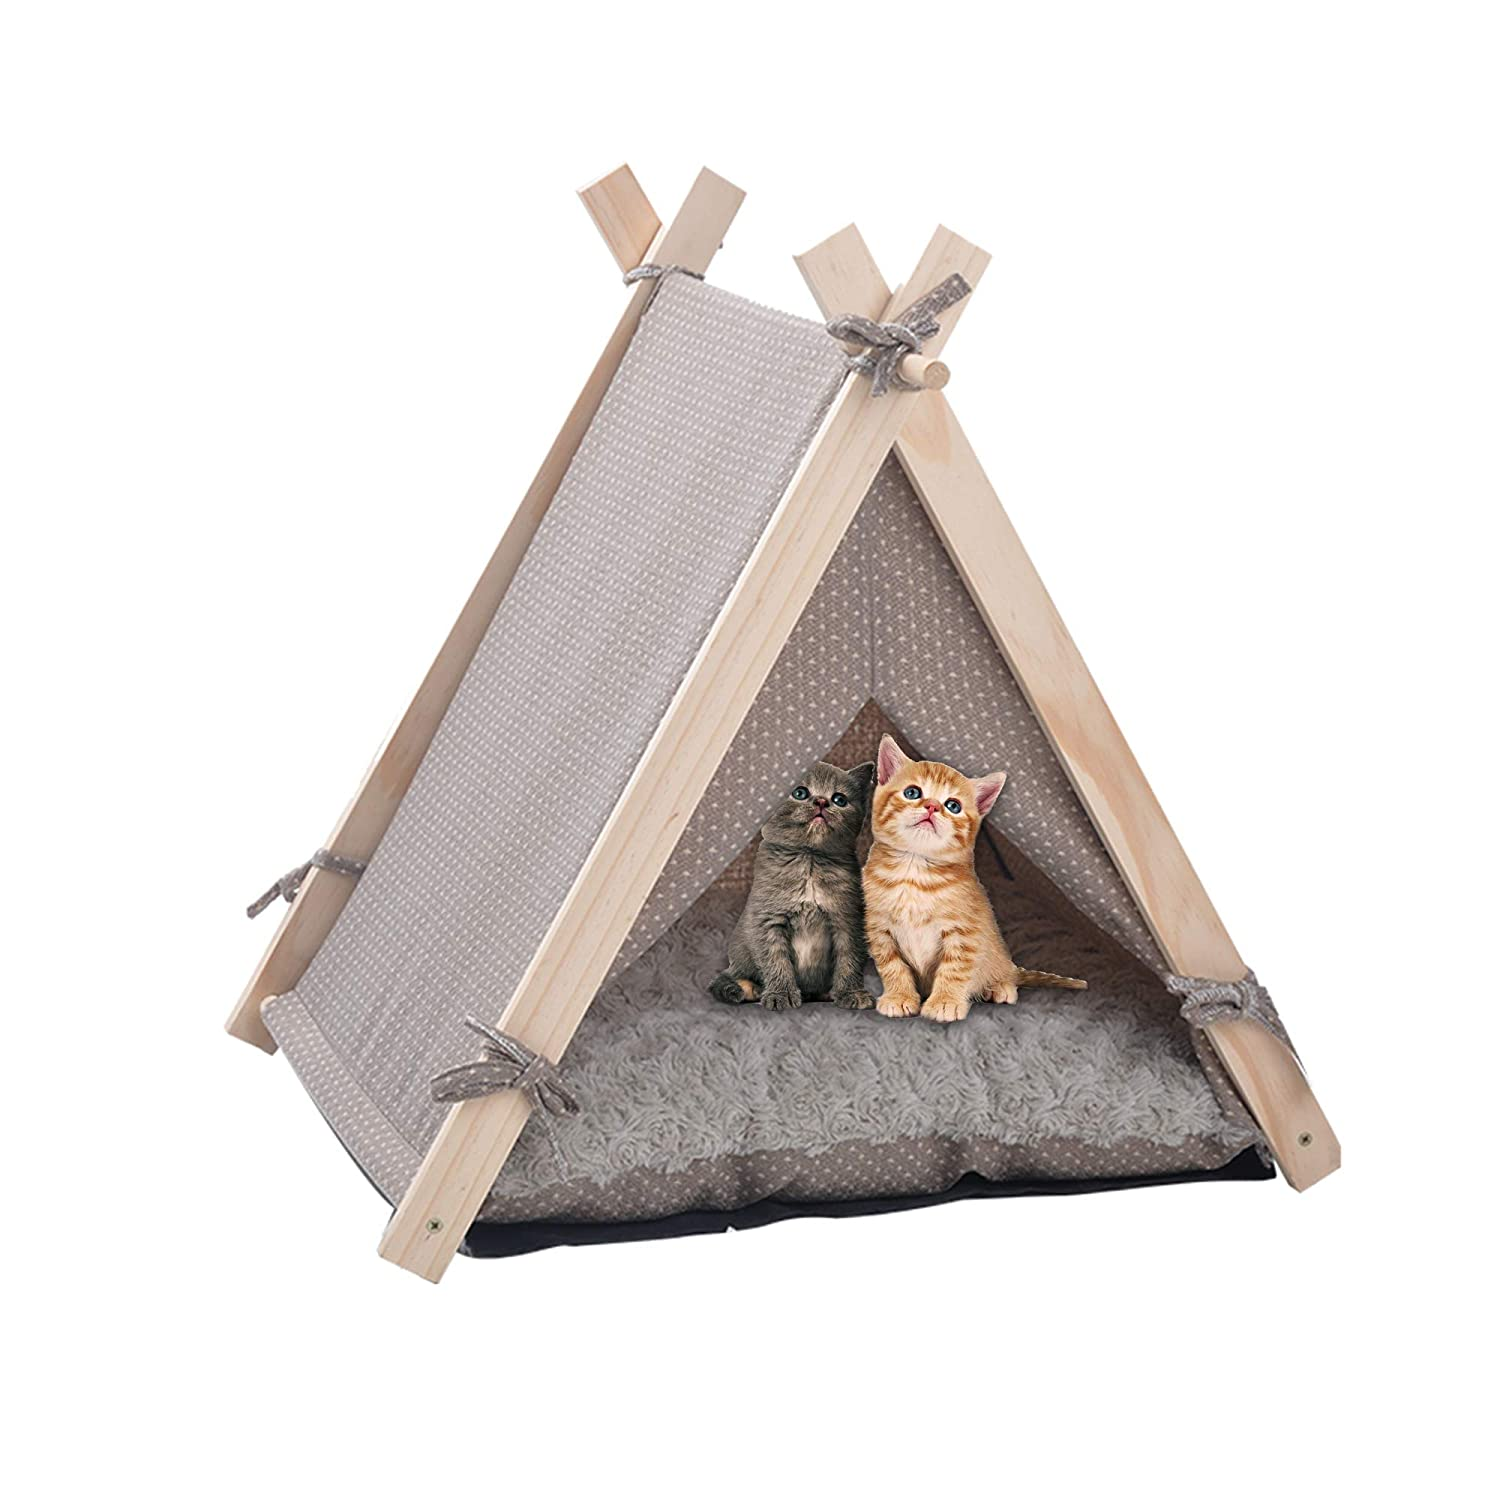 LuckerMore Pet Teepee Tent Dog Cat Tent Bed Small Washable with Soft Bed Padding for Kitty Puppy Small Dog